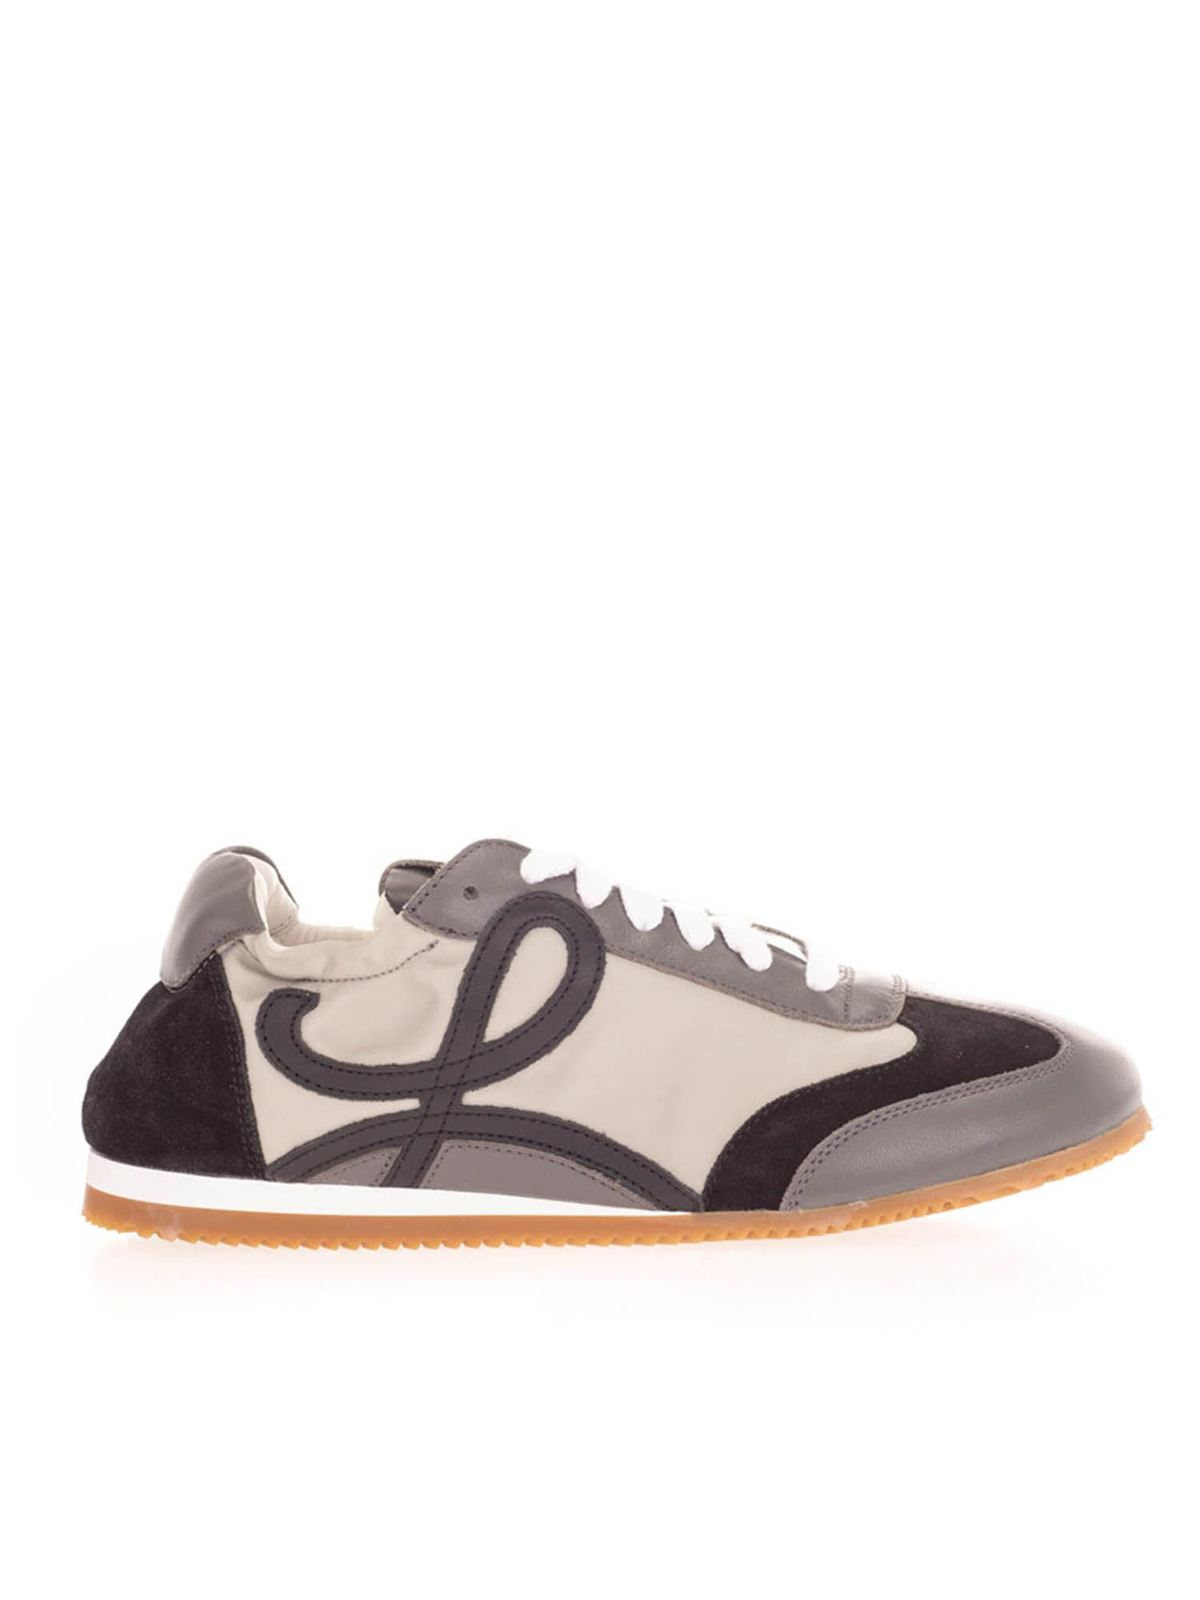 Loewe Sneakers BALLET RUNNER SNEAKERS IN WHITE AND GRAY